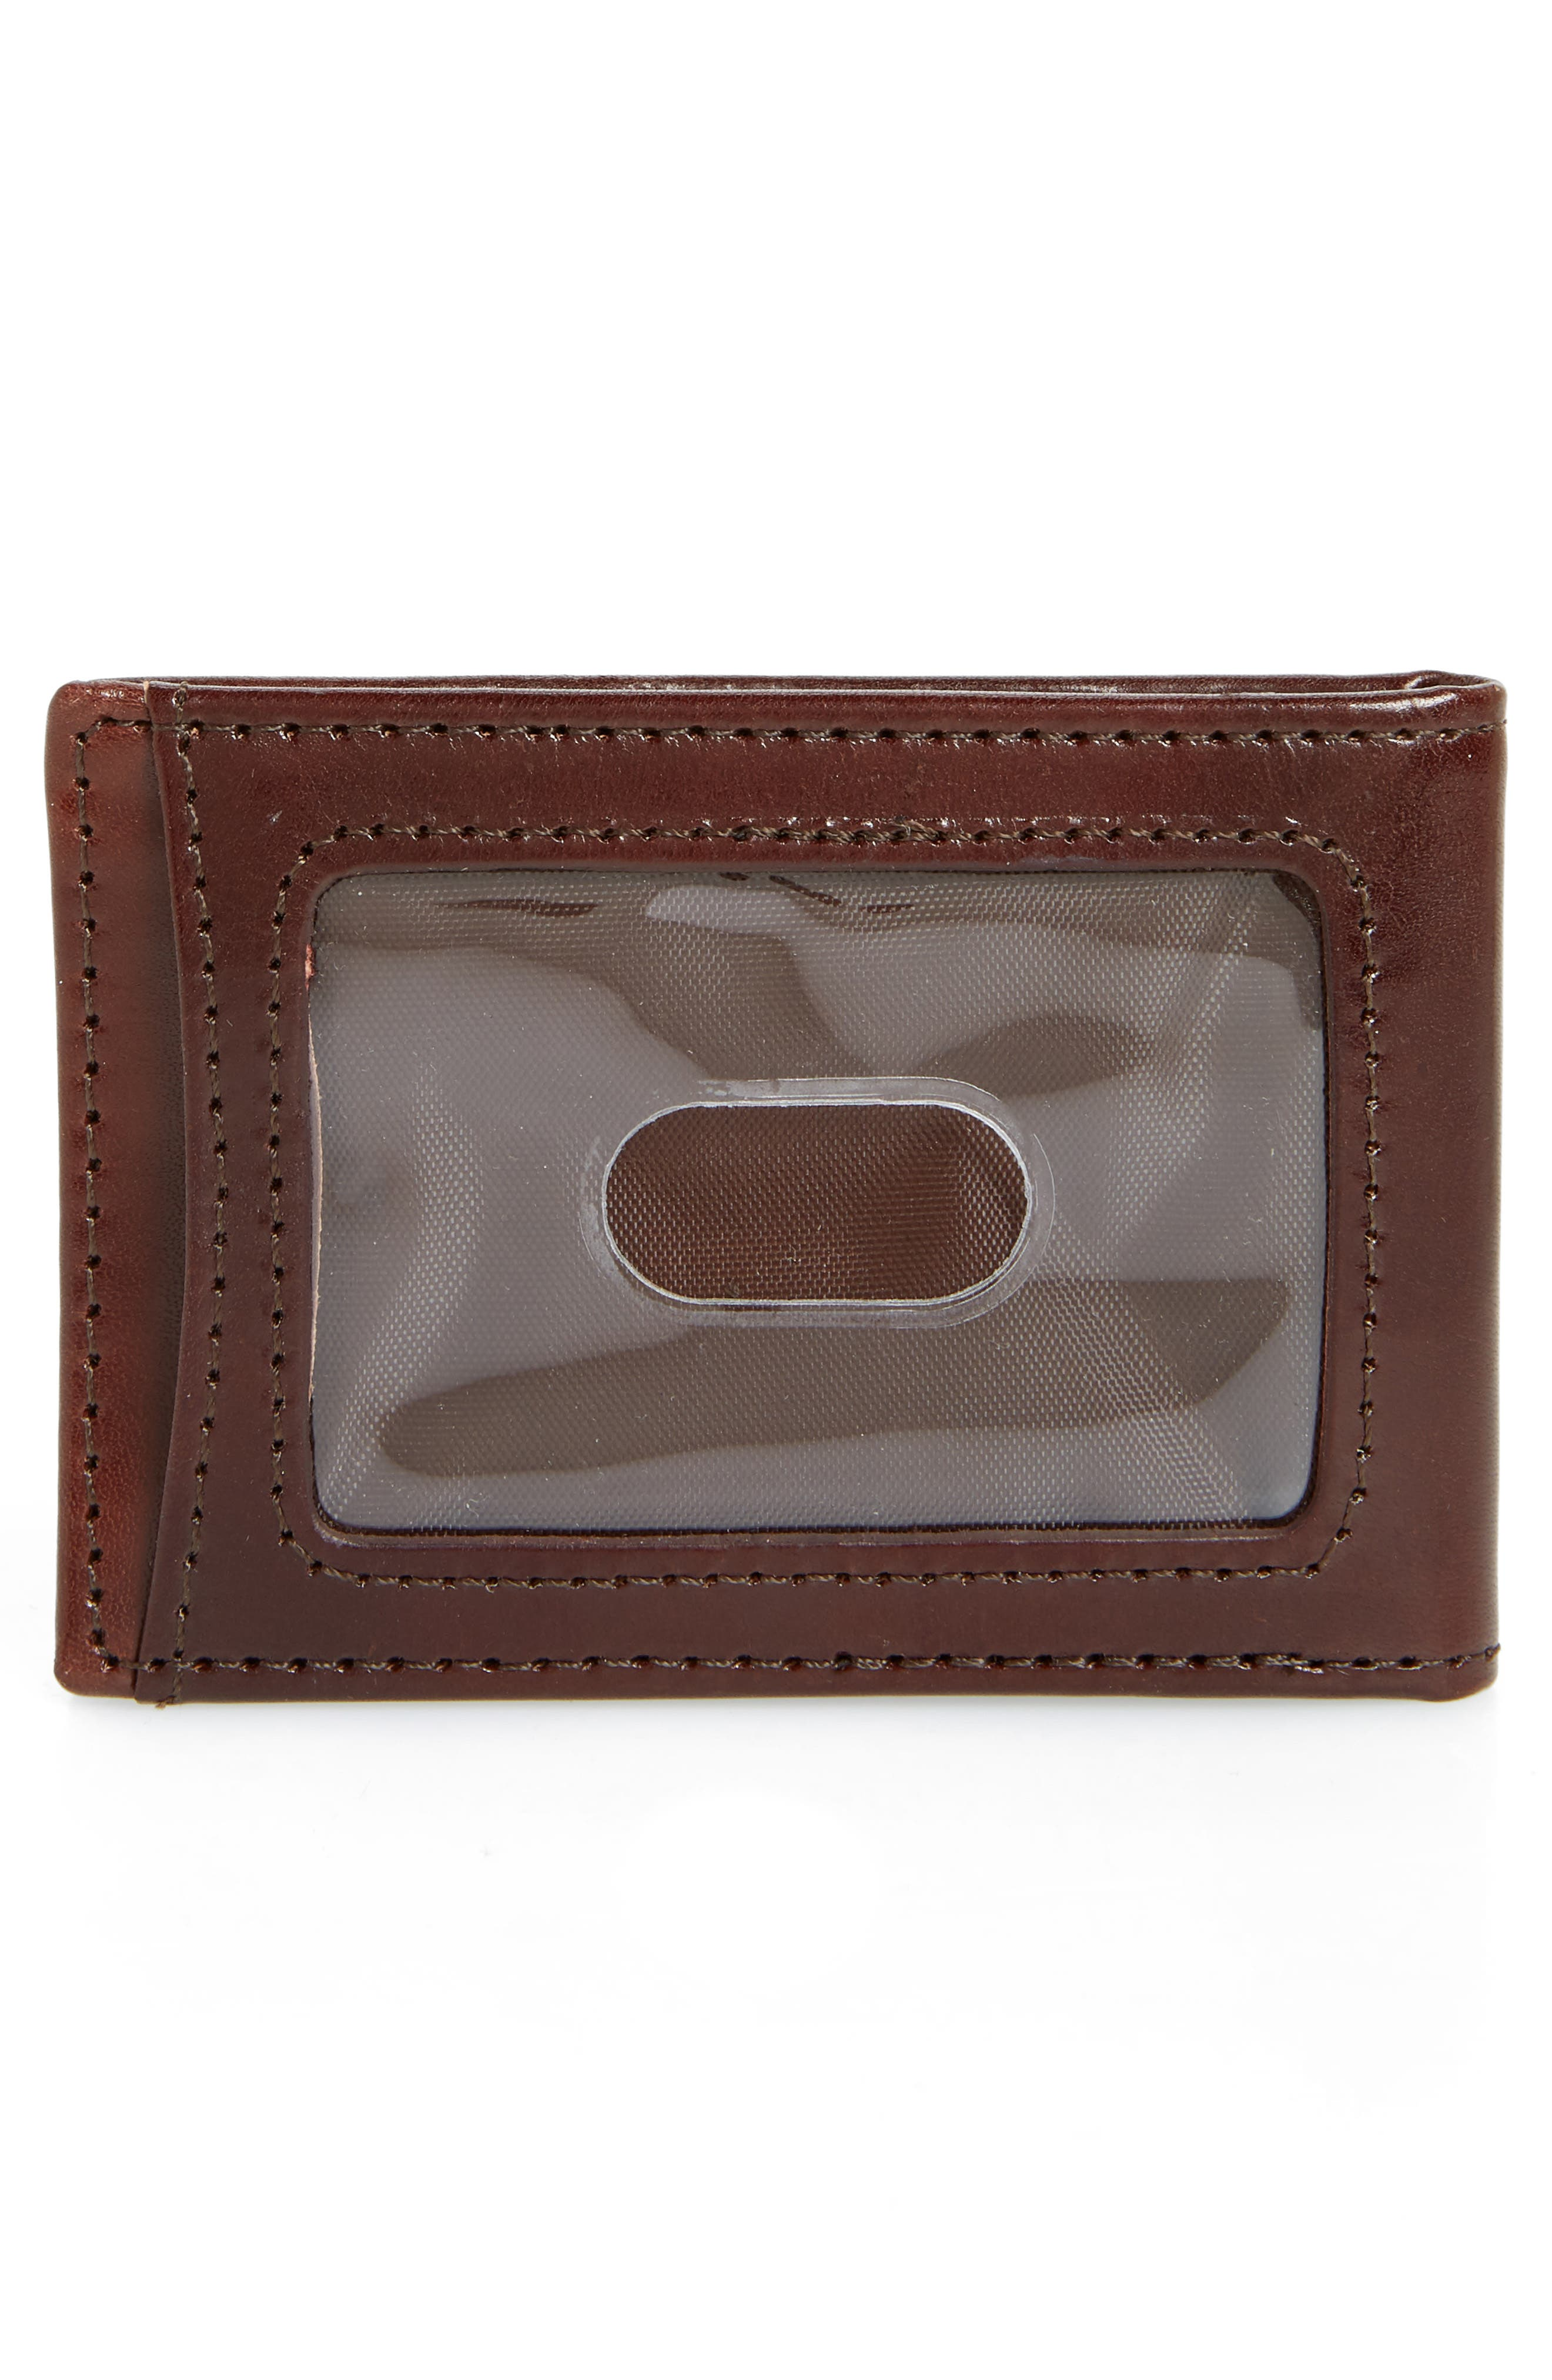 JOHNSTON & MURPHY, Leather Money Clip Wallet, Alternate thumbnail 2, color, BROWN